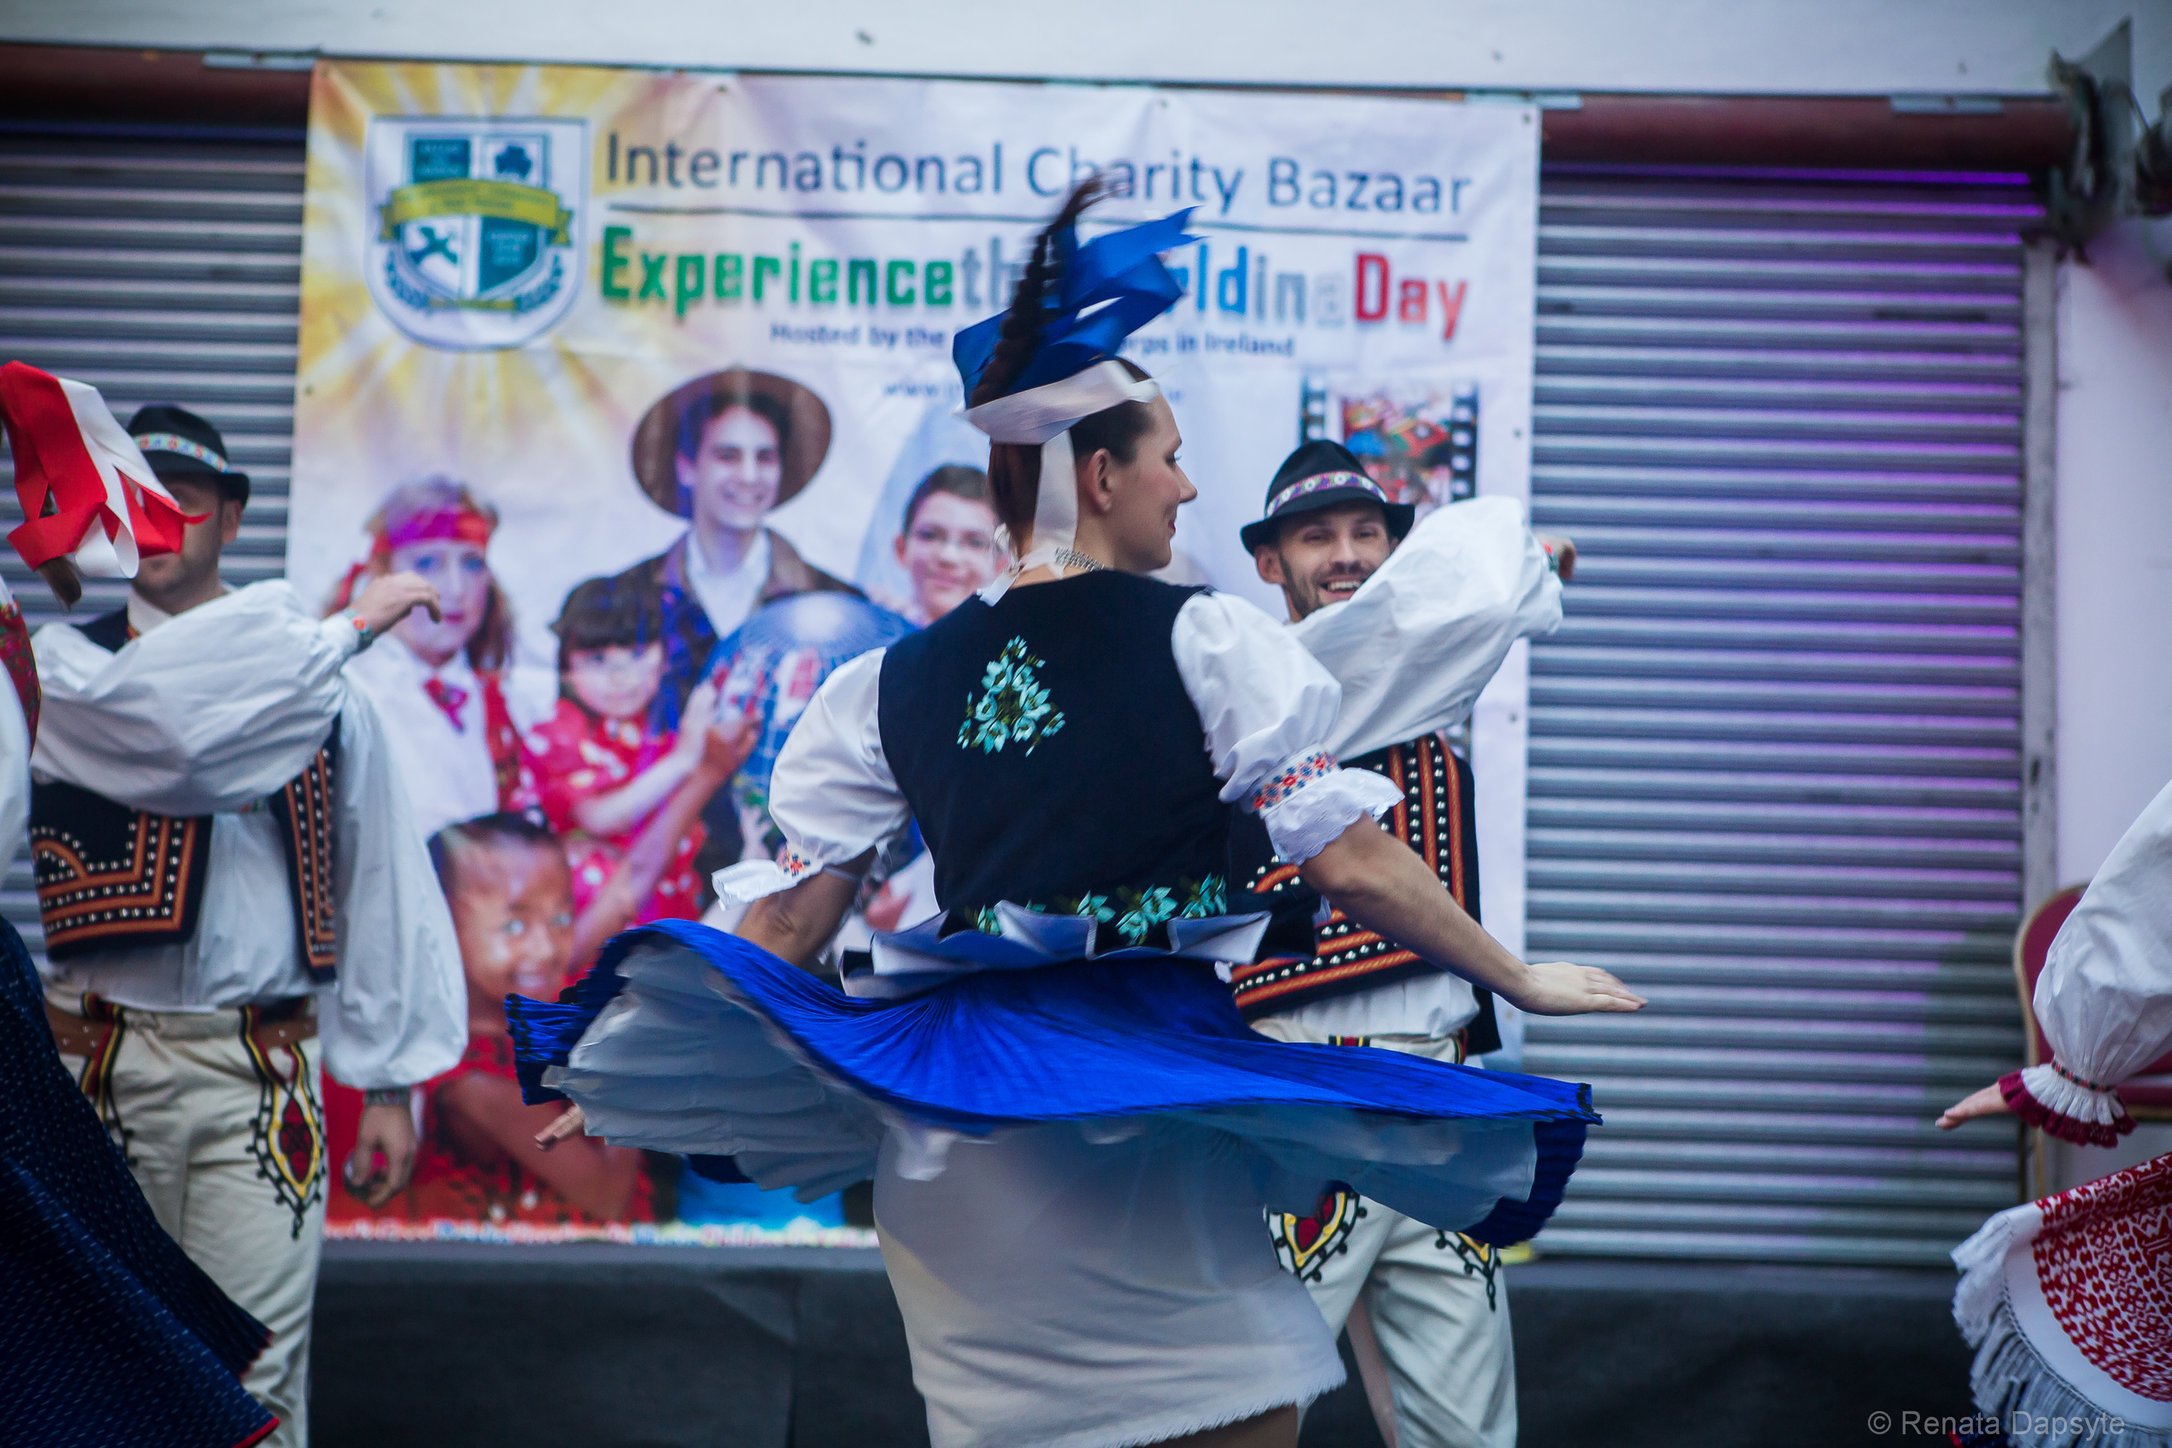 035_International Charity Bazaar Dublin 2013.JPG